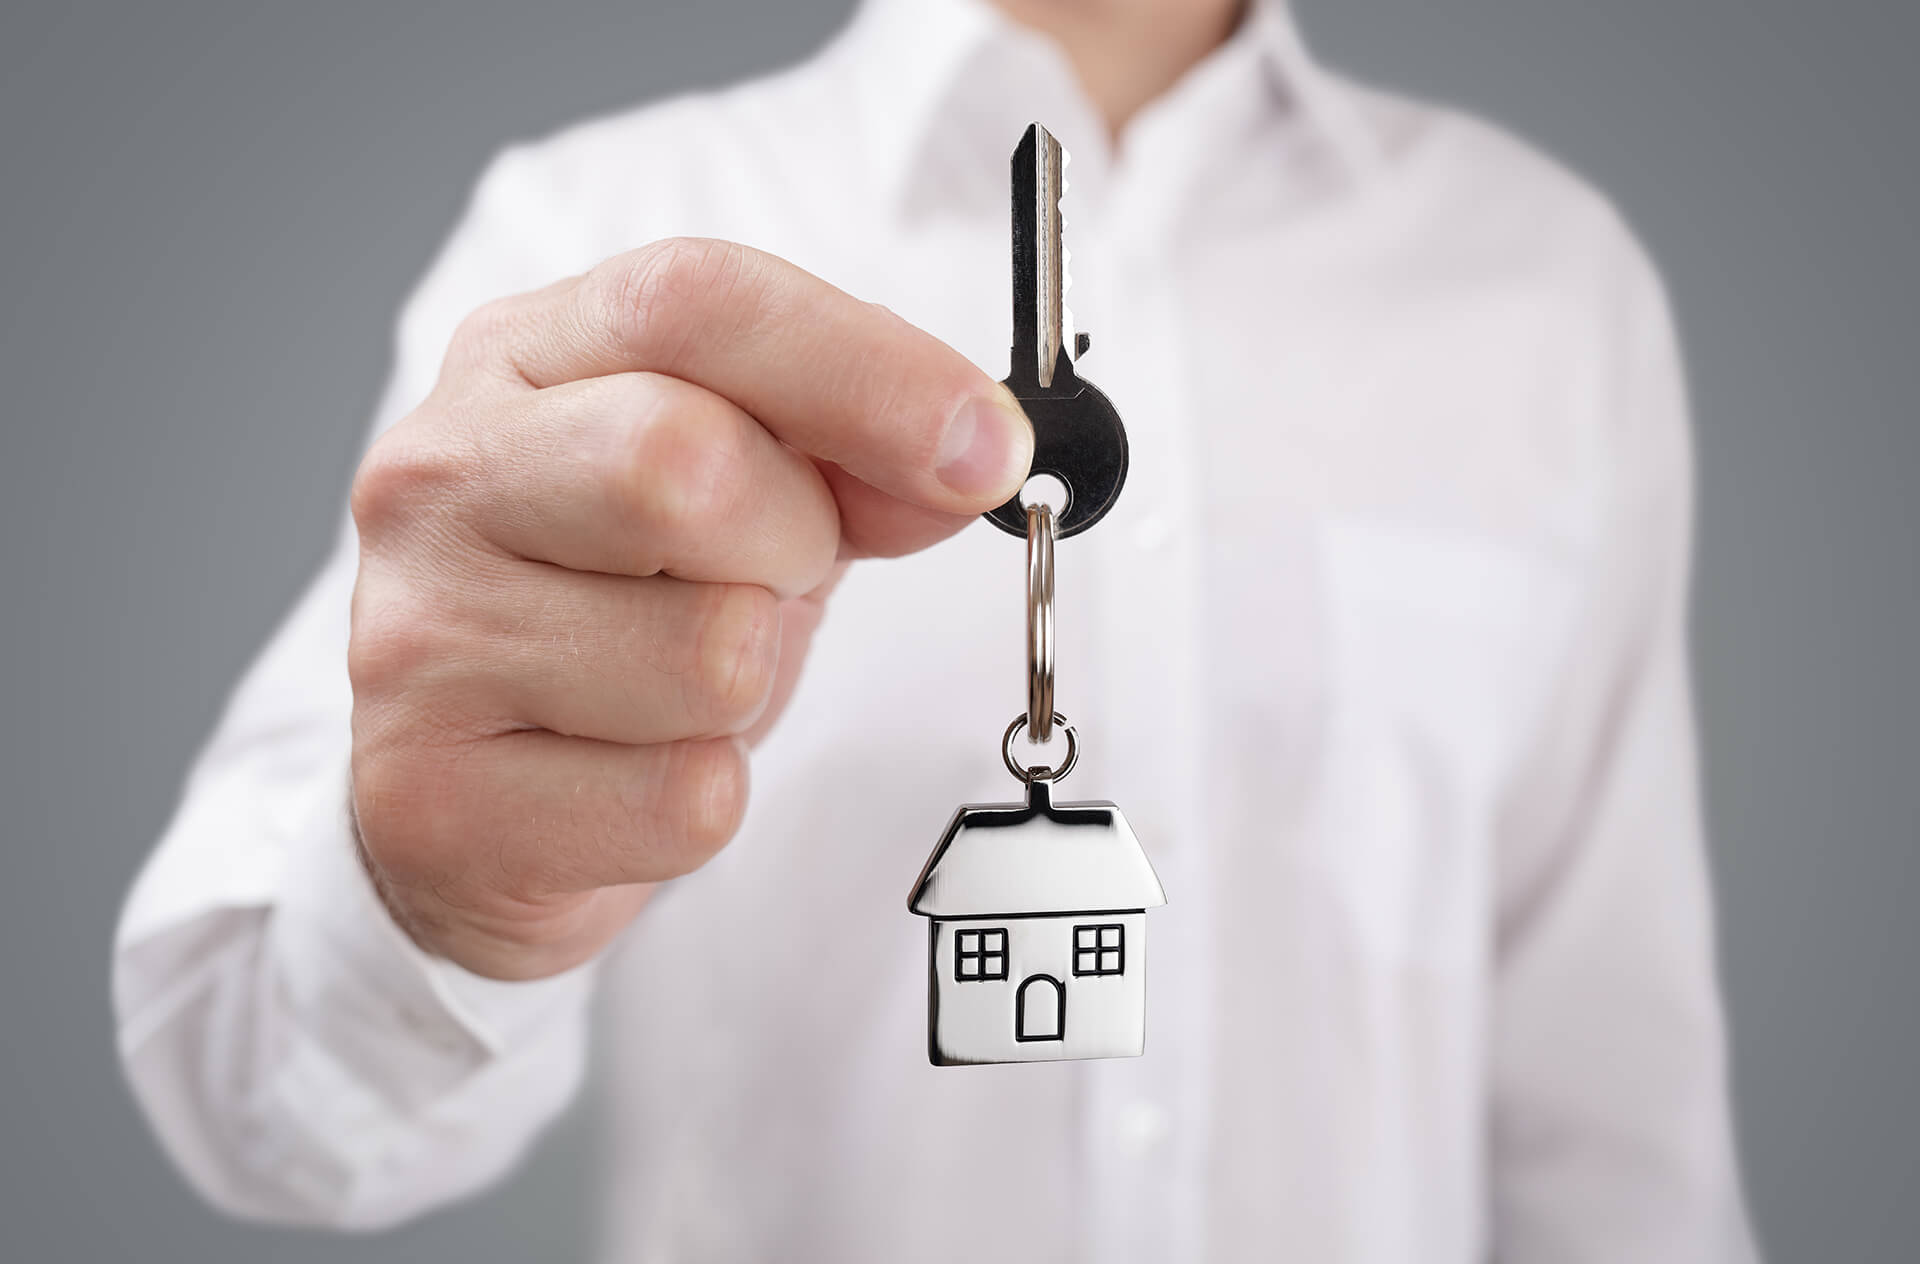 Picture of a landlord handing over the keys to you (the viewer). Represents landlord liability insurance